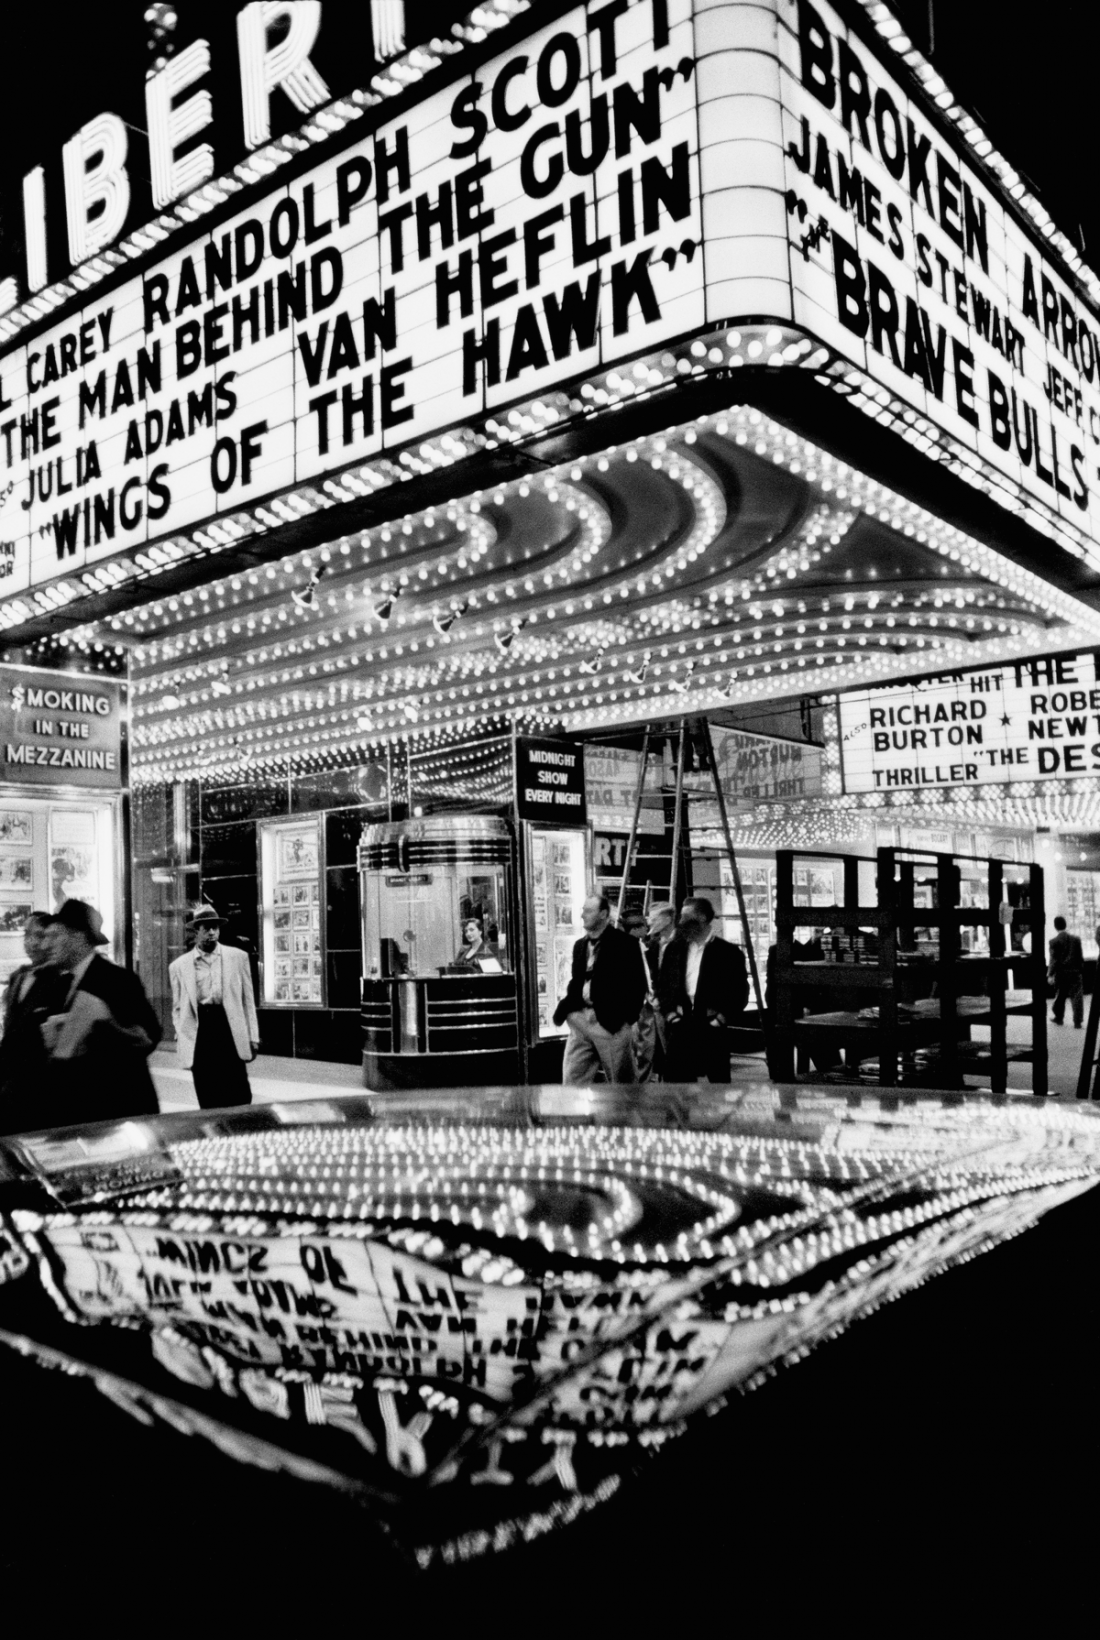 Wings of the Hawk, New York, 1955 © William Klein